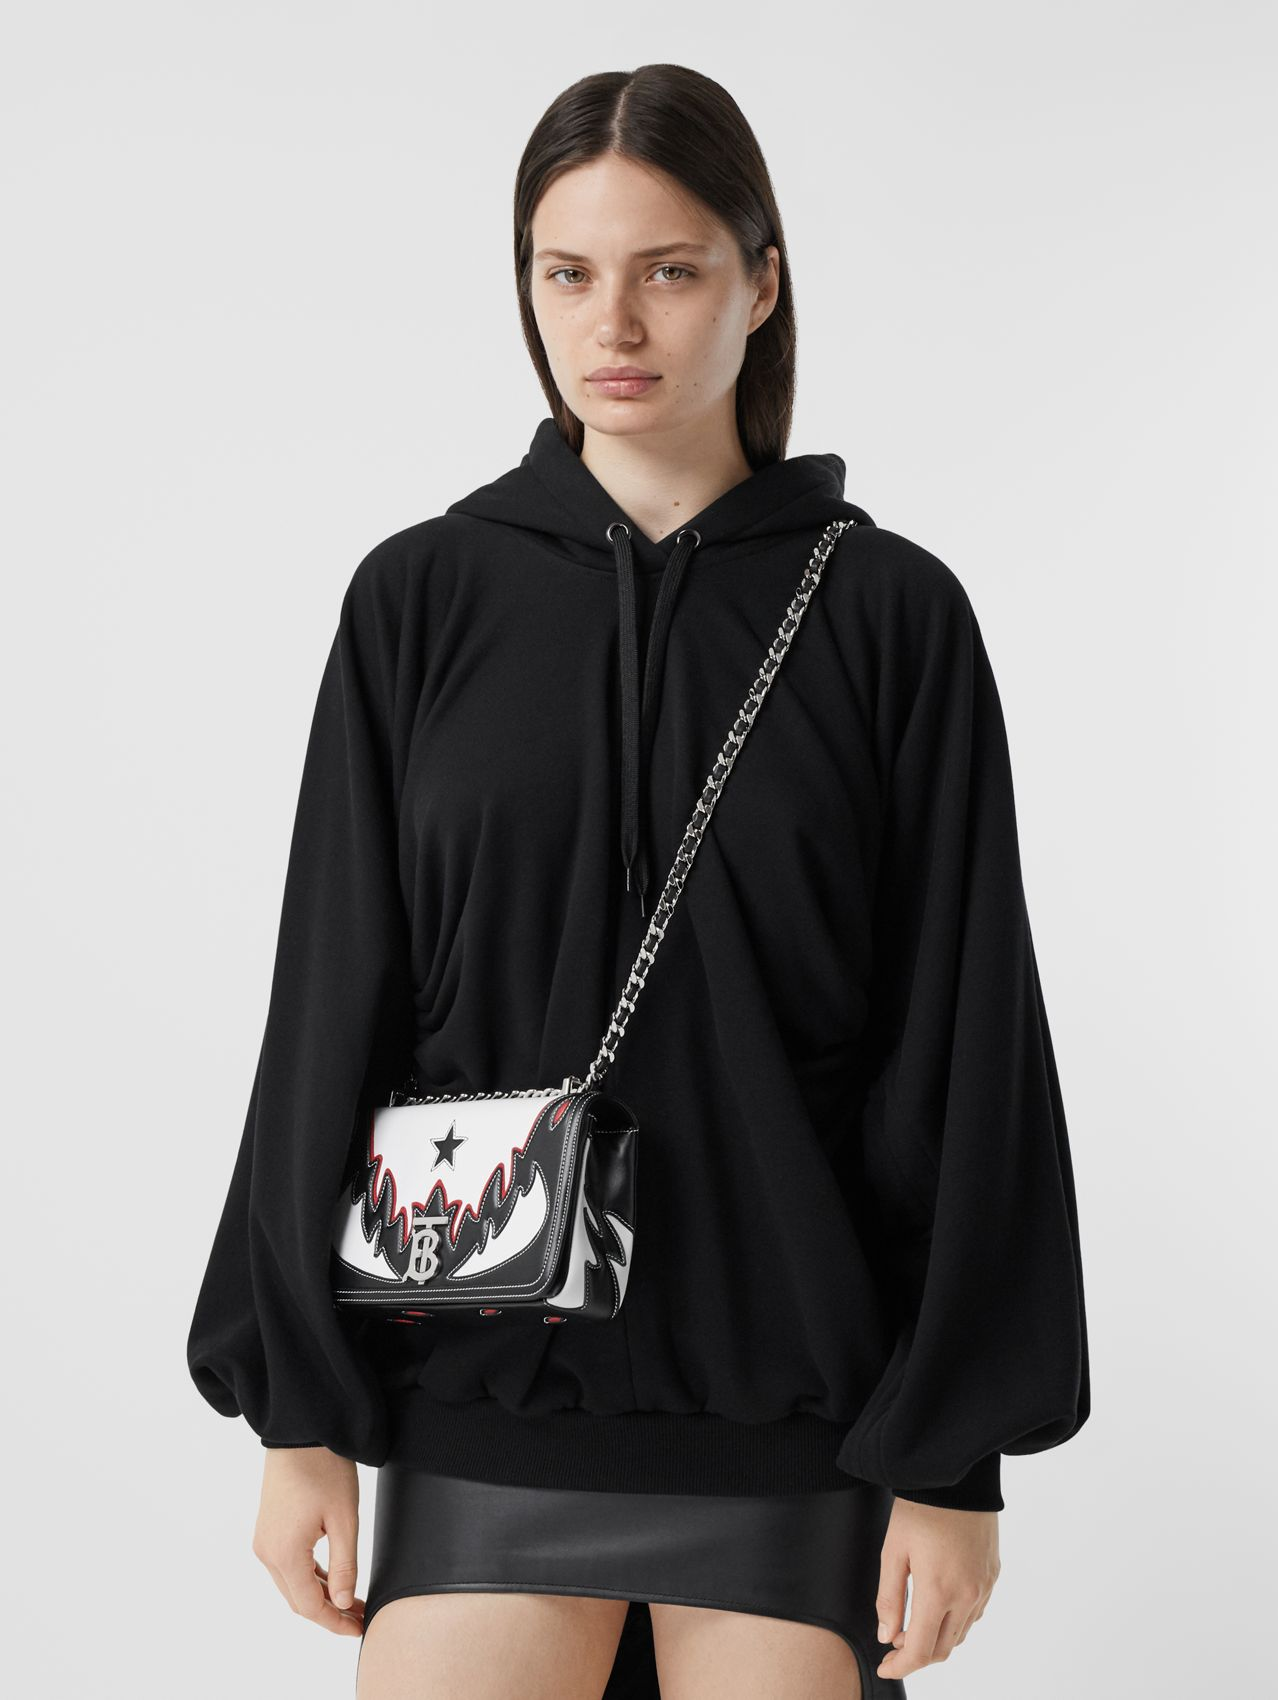 Small Topstitch Appliqué Leather Lola Bag in White/black/red